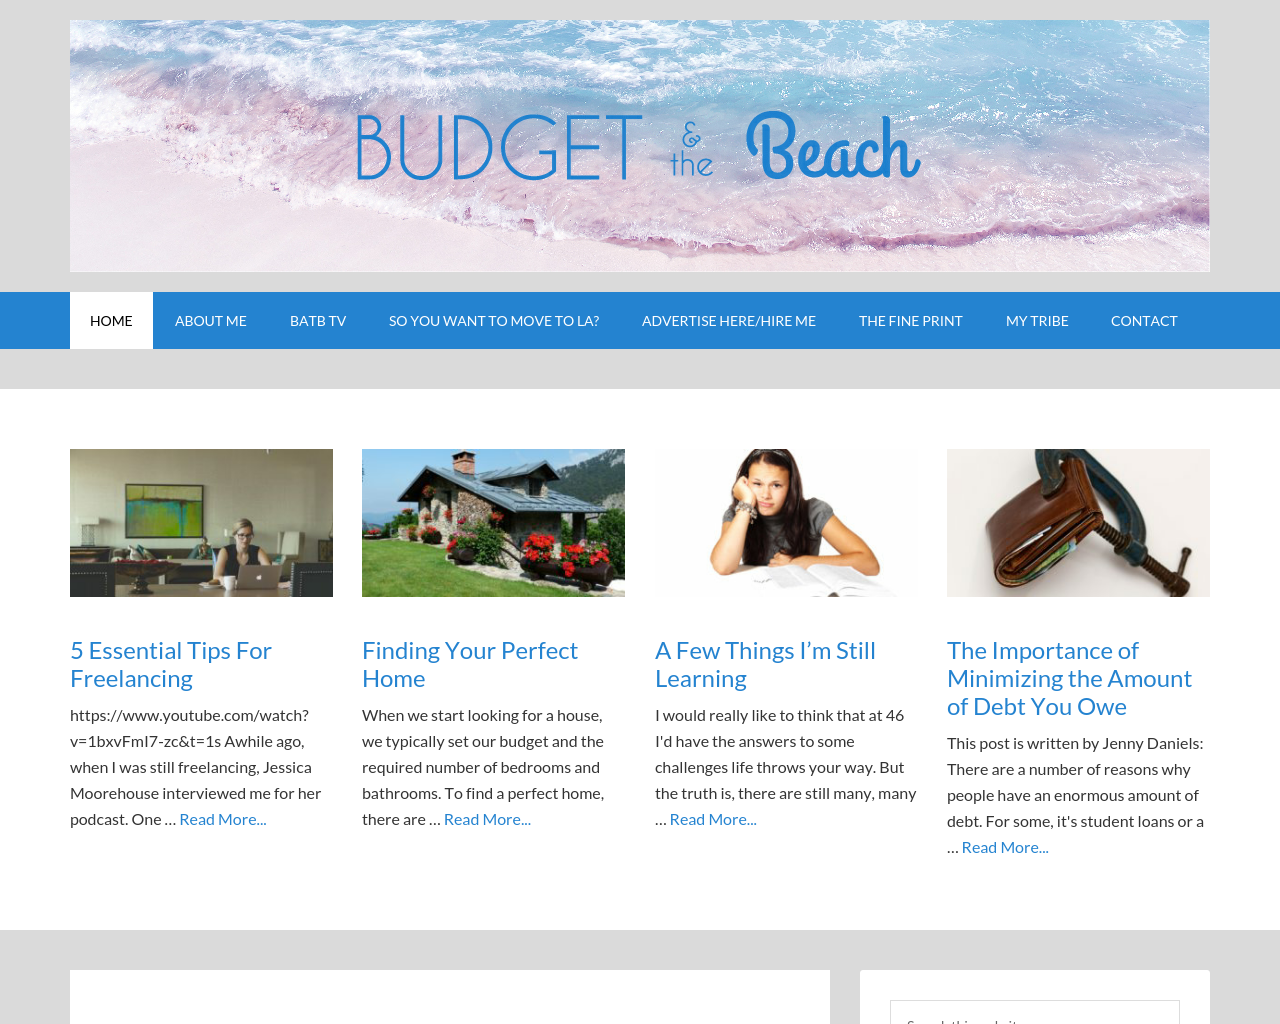 Budget-and-the-Beach-Advertising-Reviews-Pricing